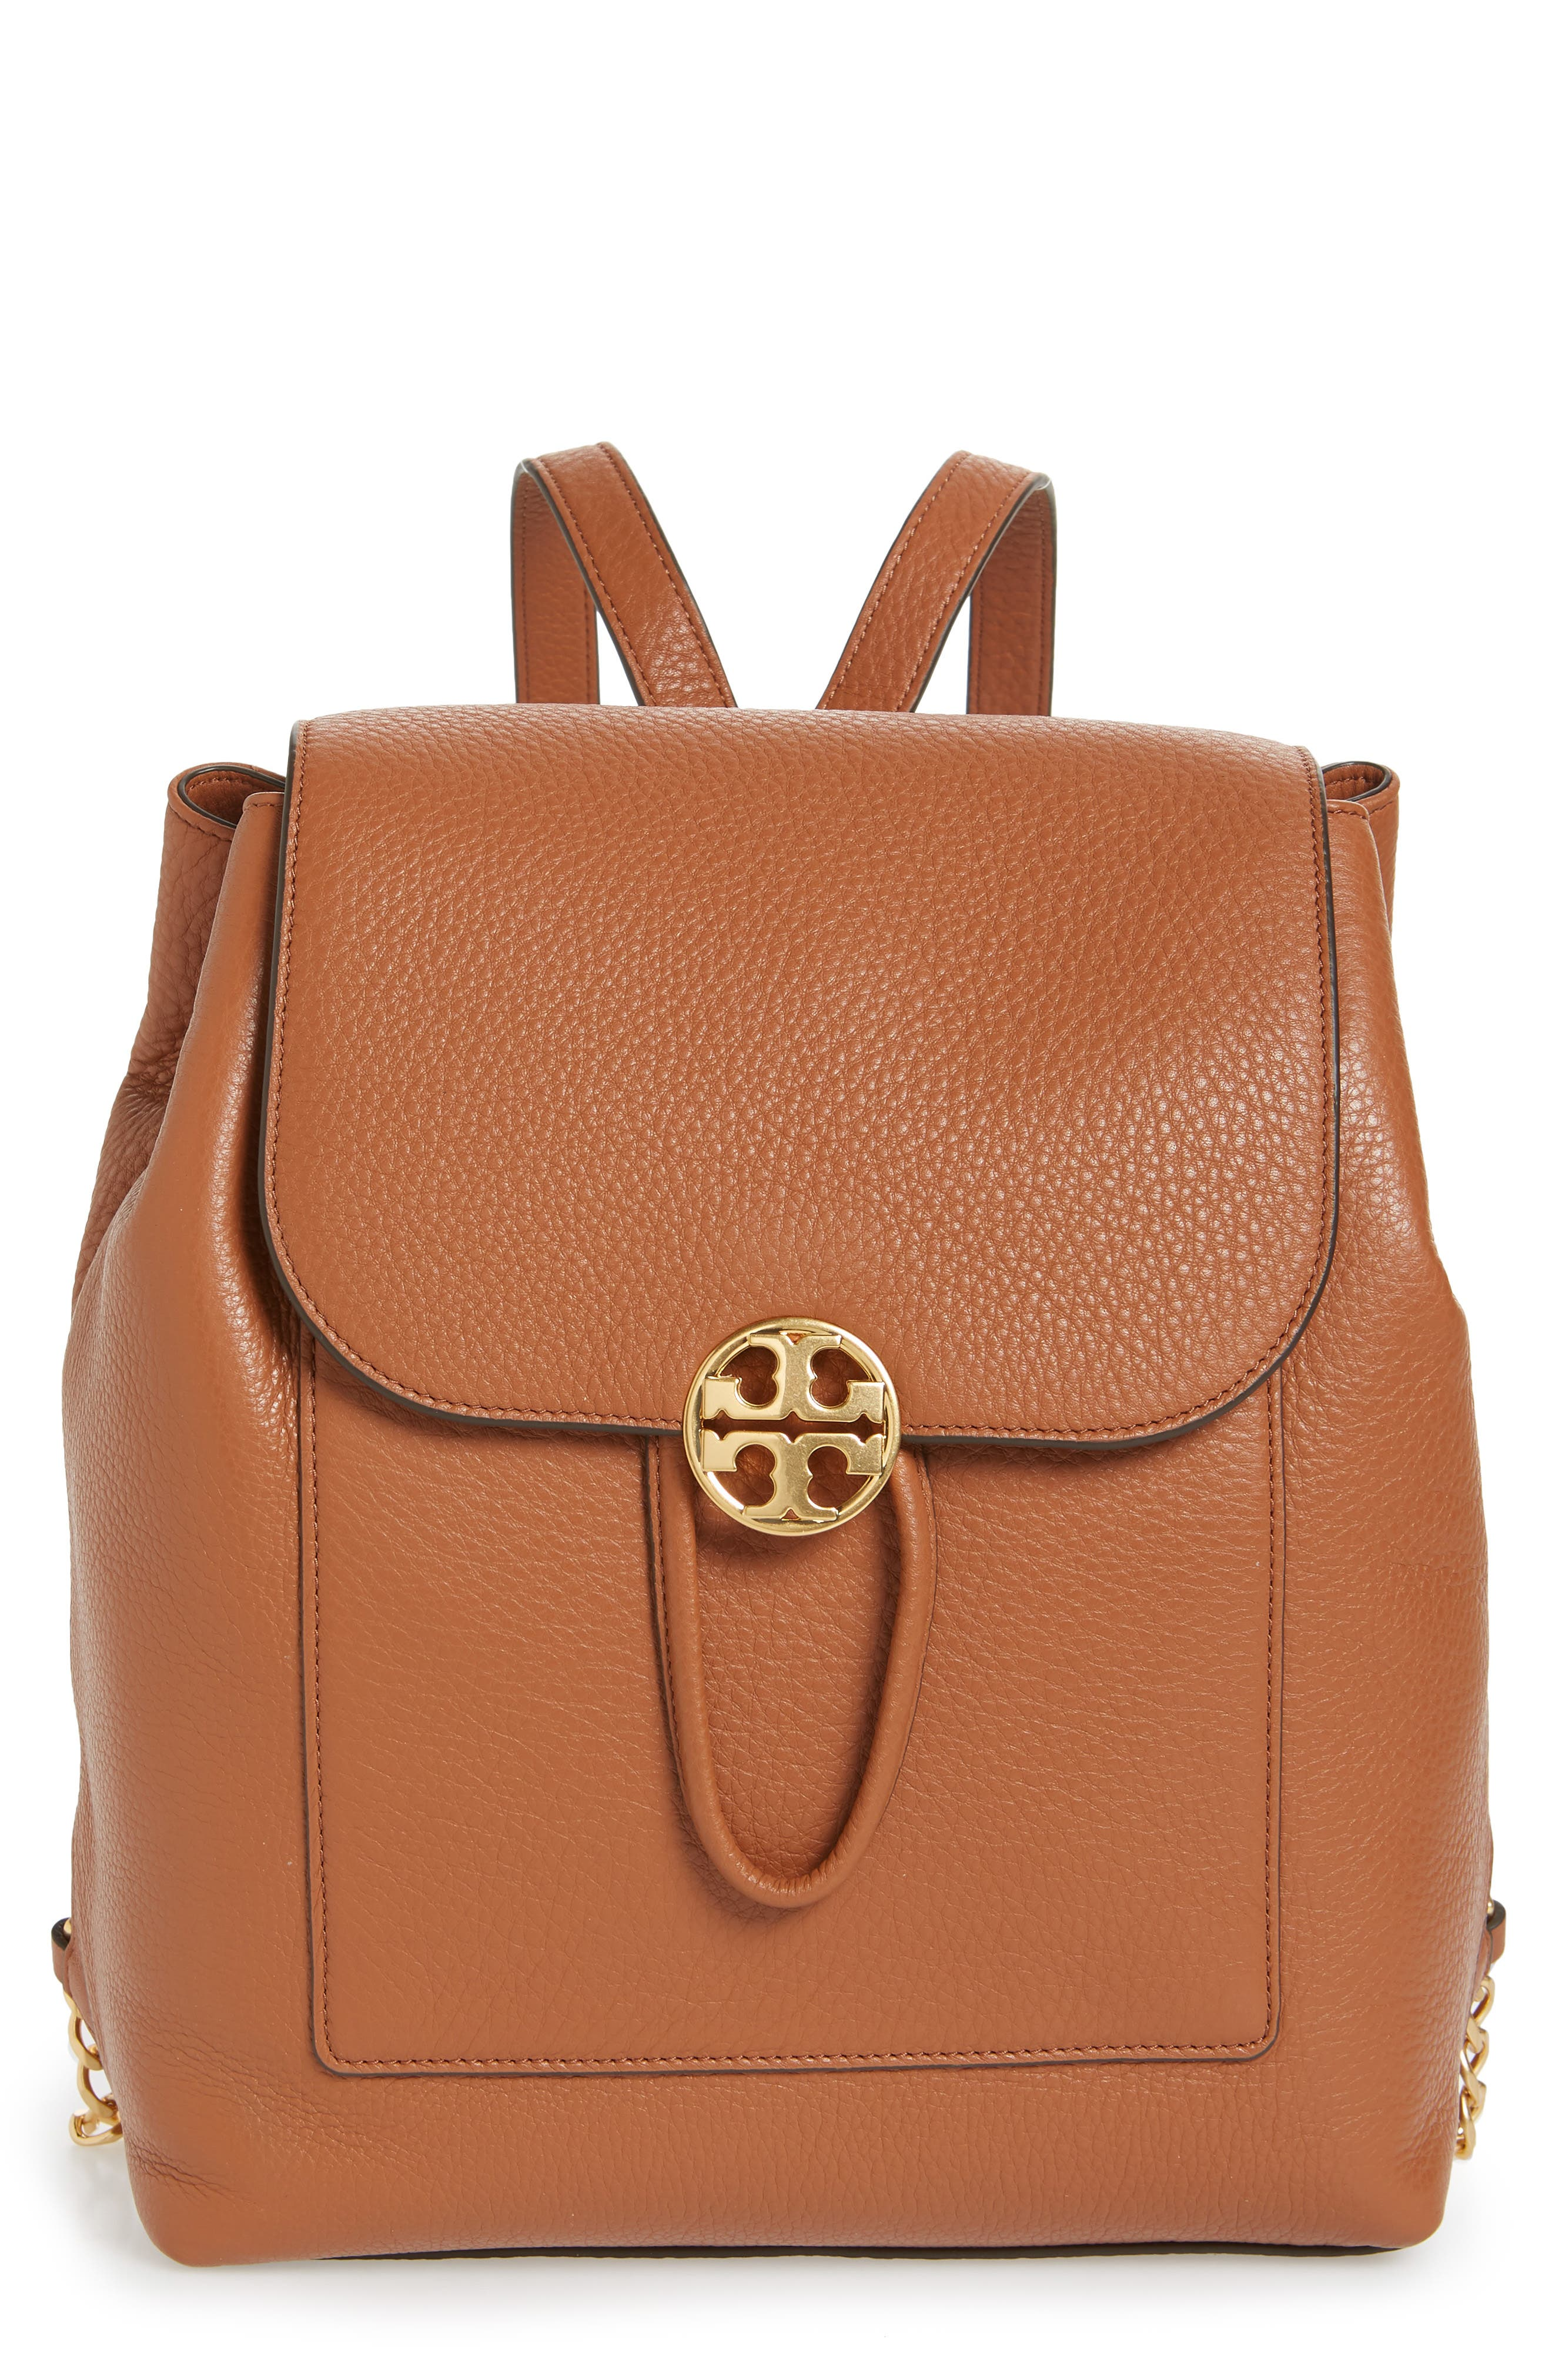 Chelsea Leather Backpack,                             Main thumbnail 1, color,                             Classic Tan